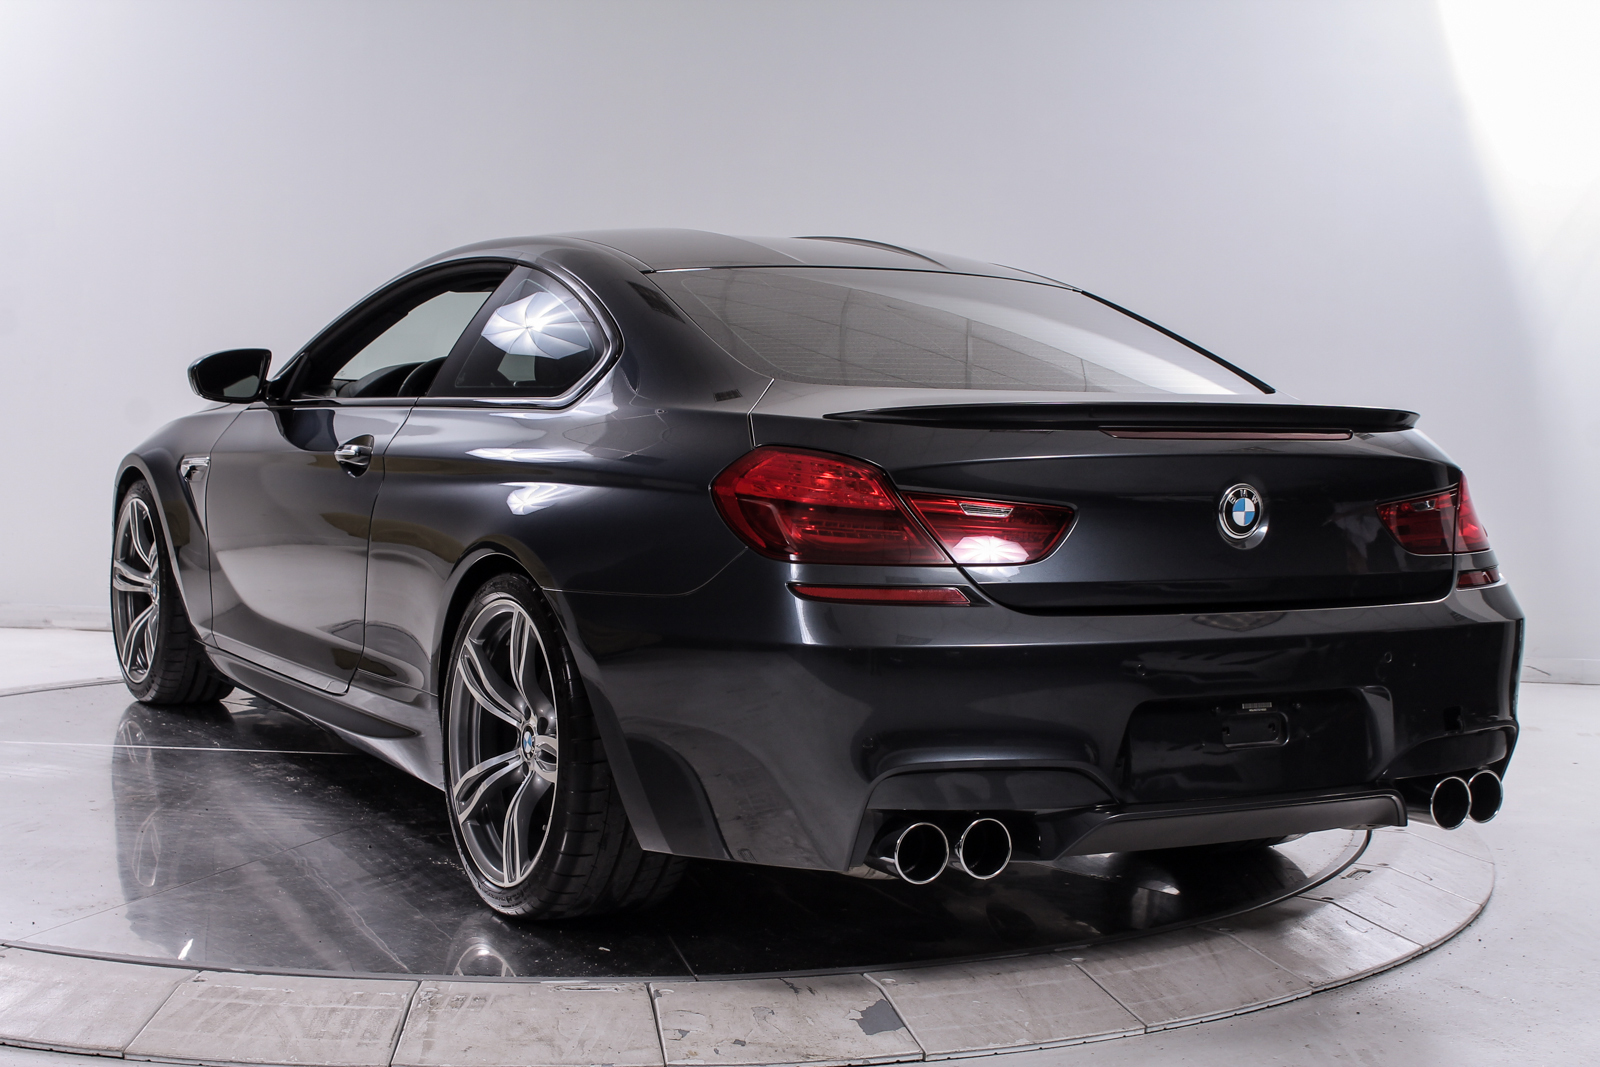 2014 Bmw M6 Technical Details Buy Aircrafts